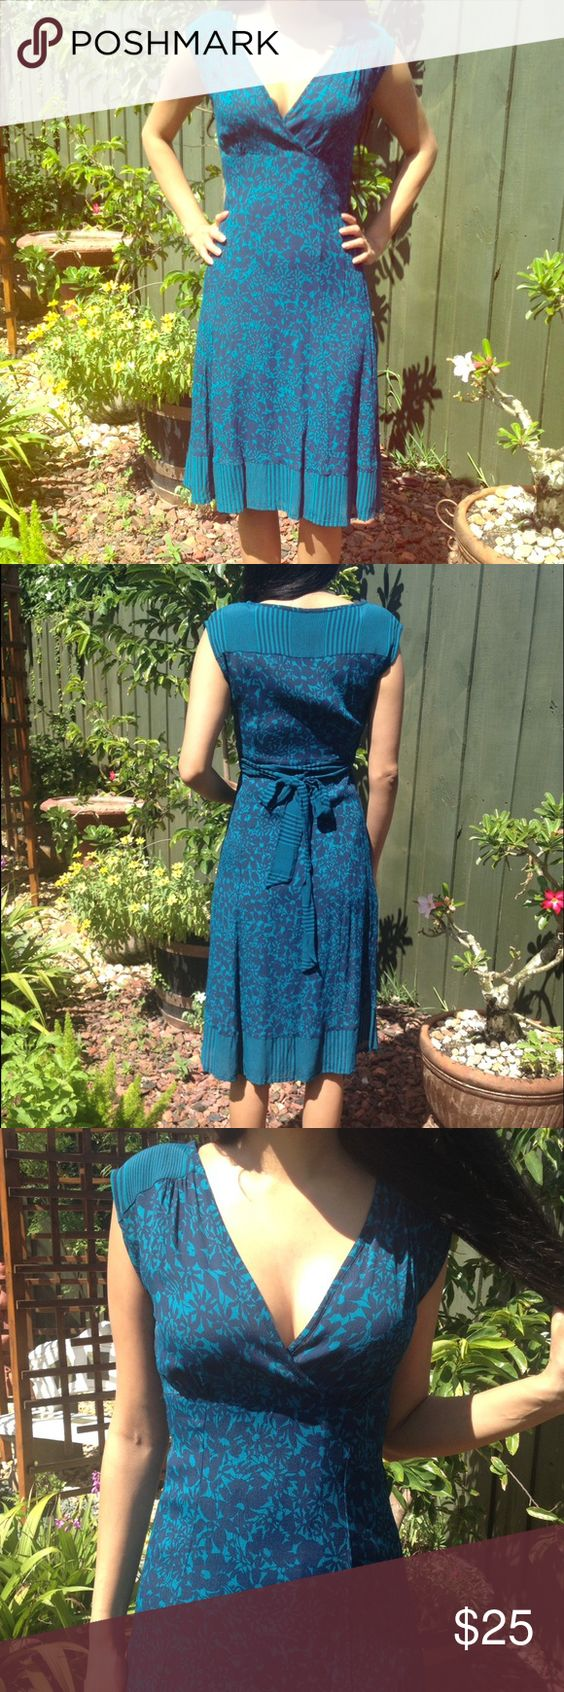 Versatile turquoise and navy dress This is from popular and very good quality British brand Monsoon. The dress is lined and closes with a side zipper. Very versatile dress - can be dressed up or down. In great condition, couldn't spot any imperfections. Color is turquoise and navy. UK size 8, US size 4. Monsoon Dresses Midi